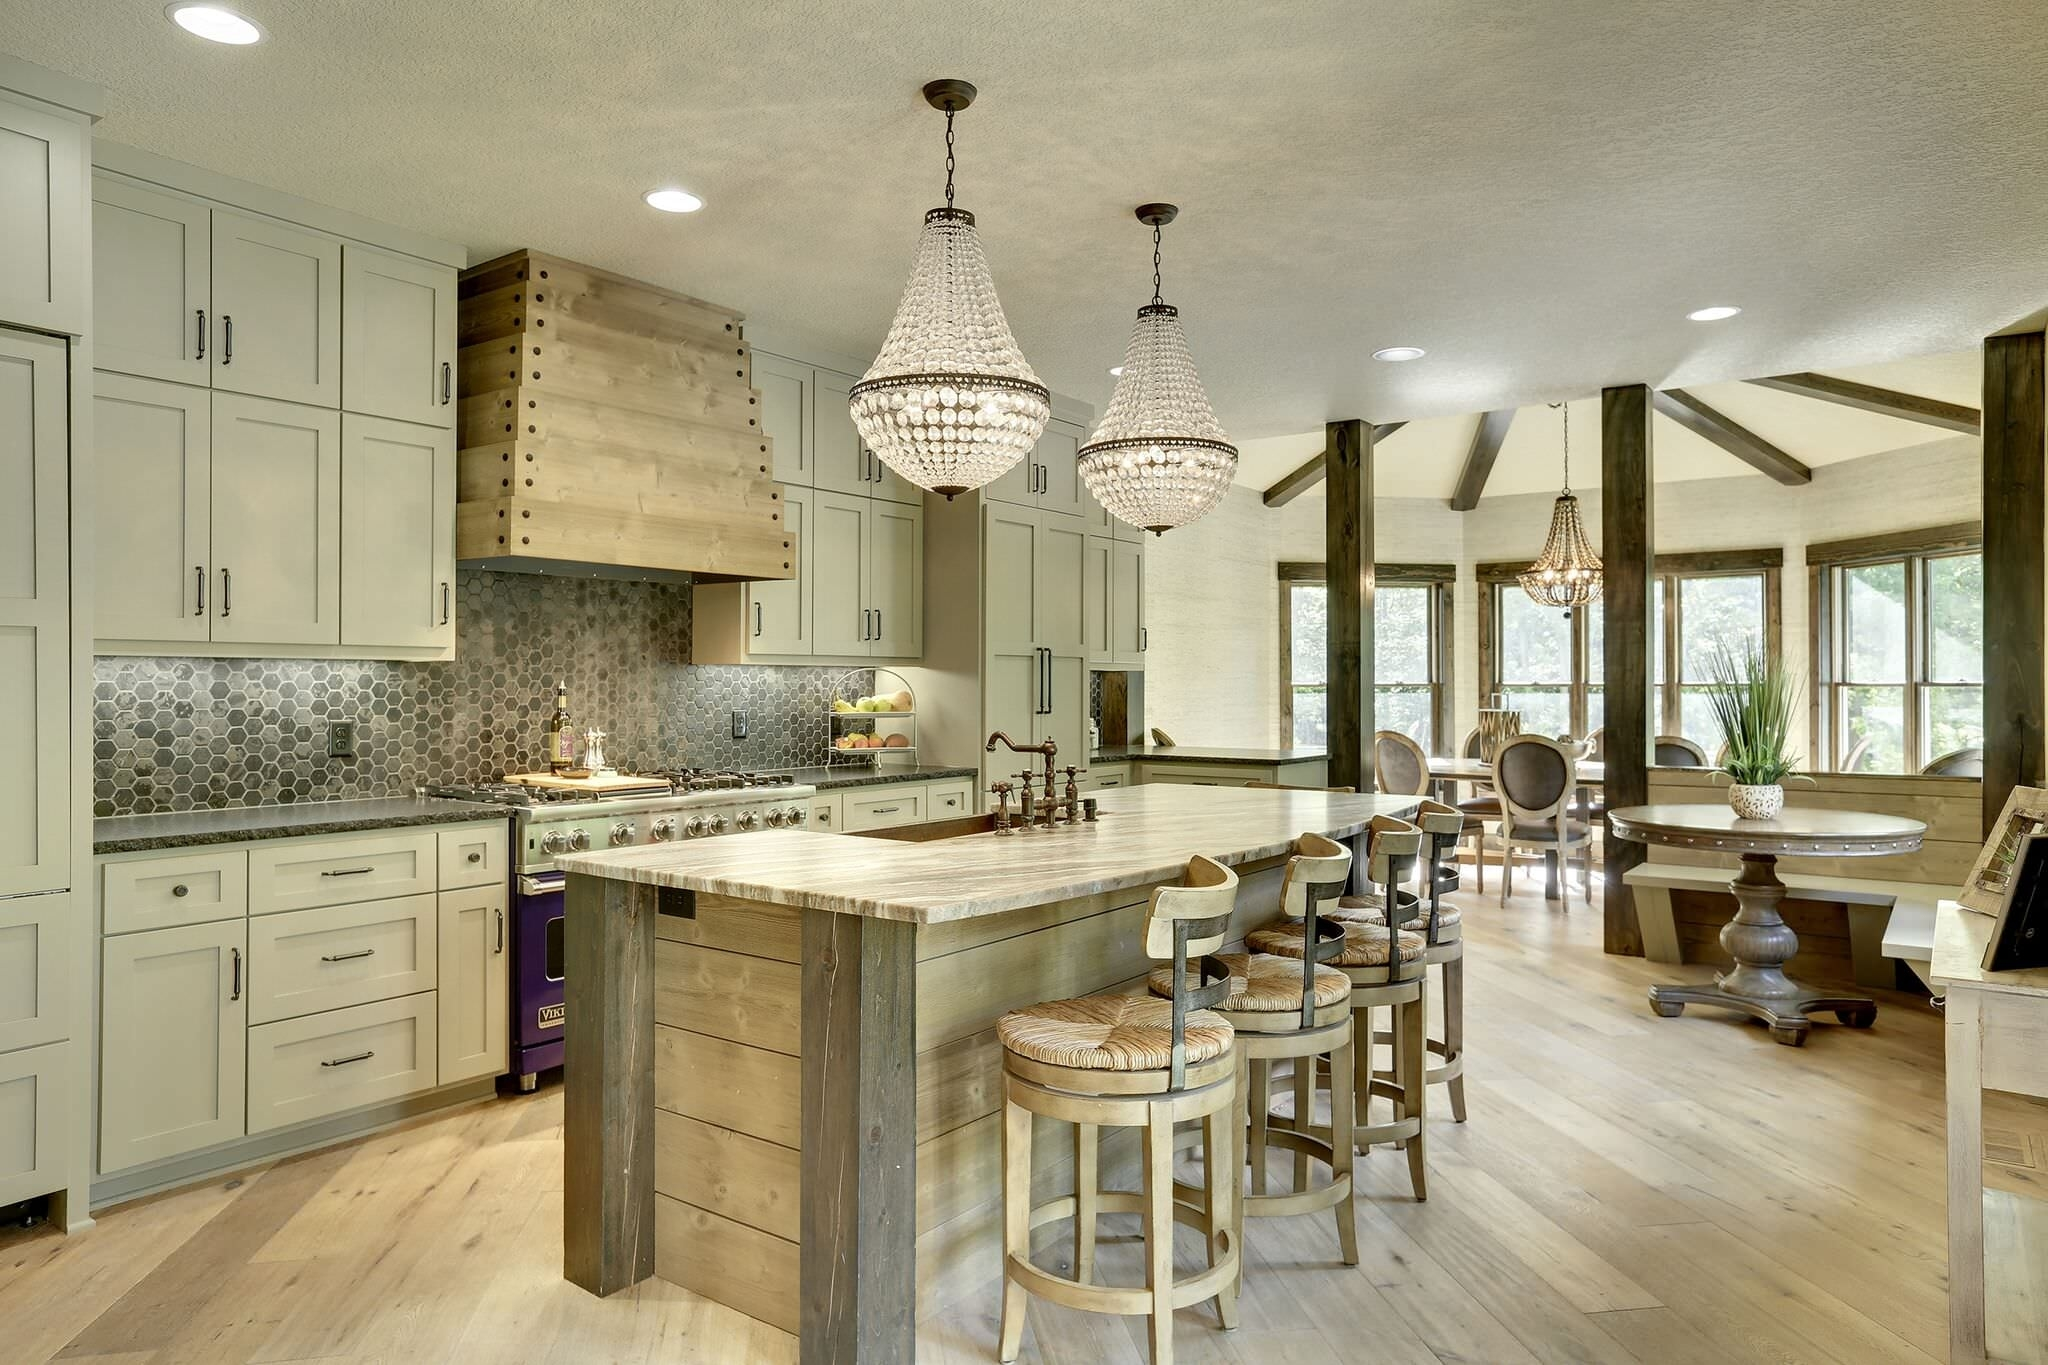 15 Inspirational Rustic Kitchen Designs You Will Adore for Interior Design Rustic Modern Kitchen